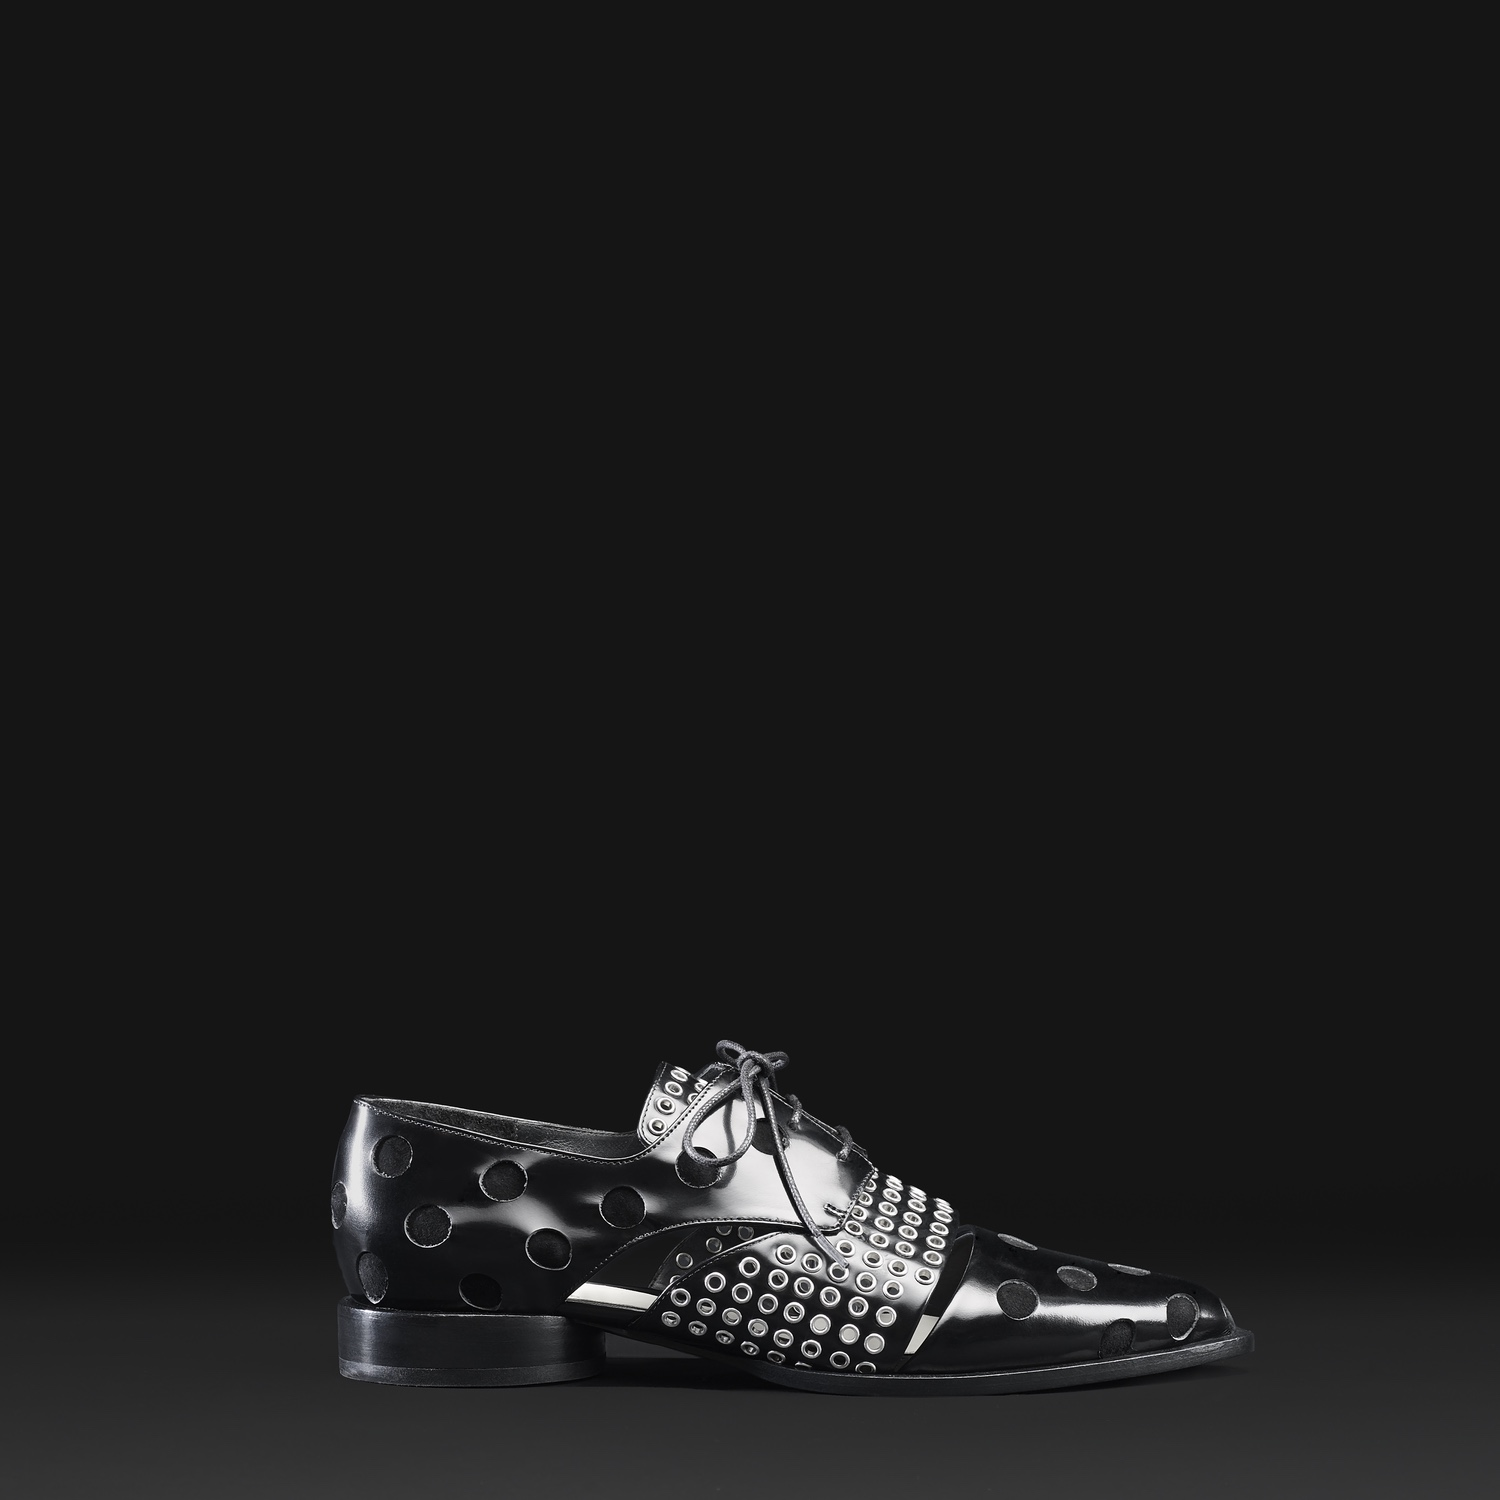 ALAINTONDOWSKI_FALLWINTER2015_SHOES_AT005-B